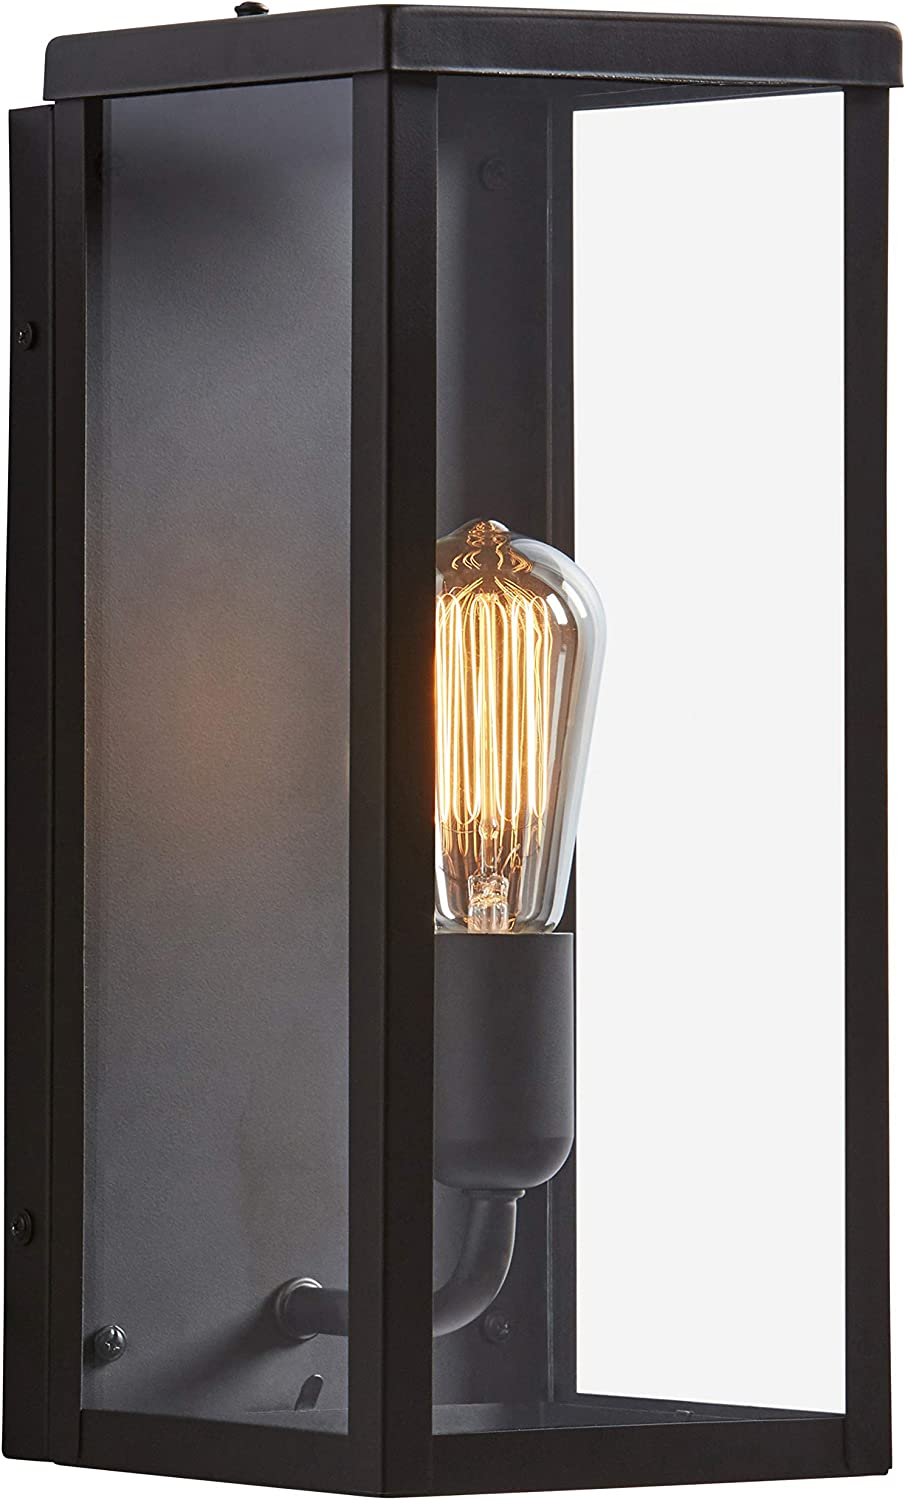 Amazon Brand Rivet Mid Century Clear Glass And Metal Wall Sconce With Bulb 14 H Bronze Amazon Com